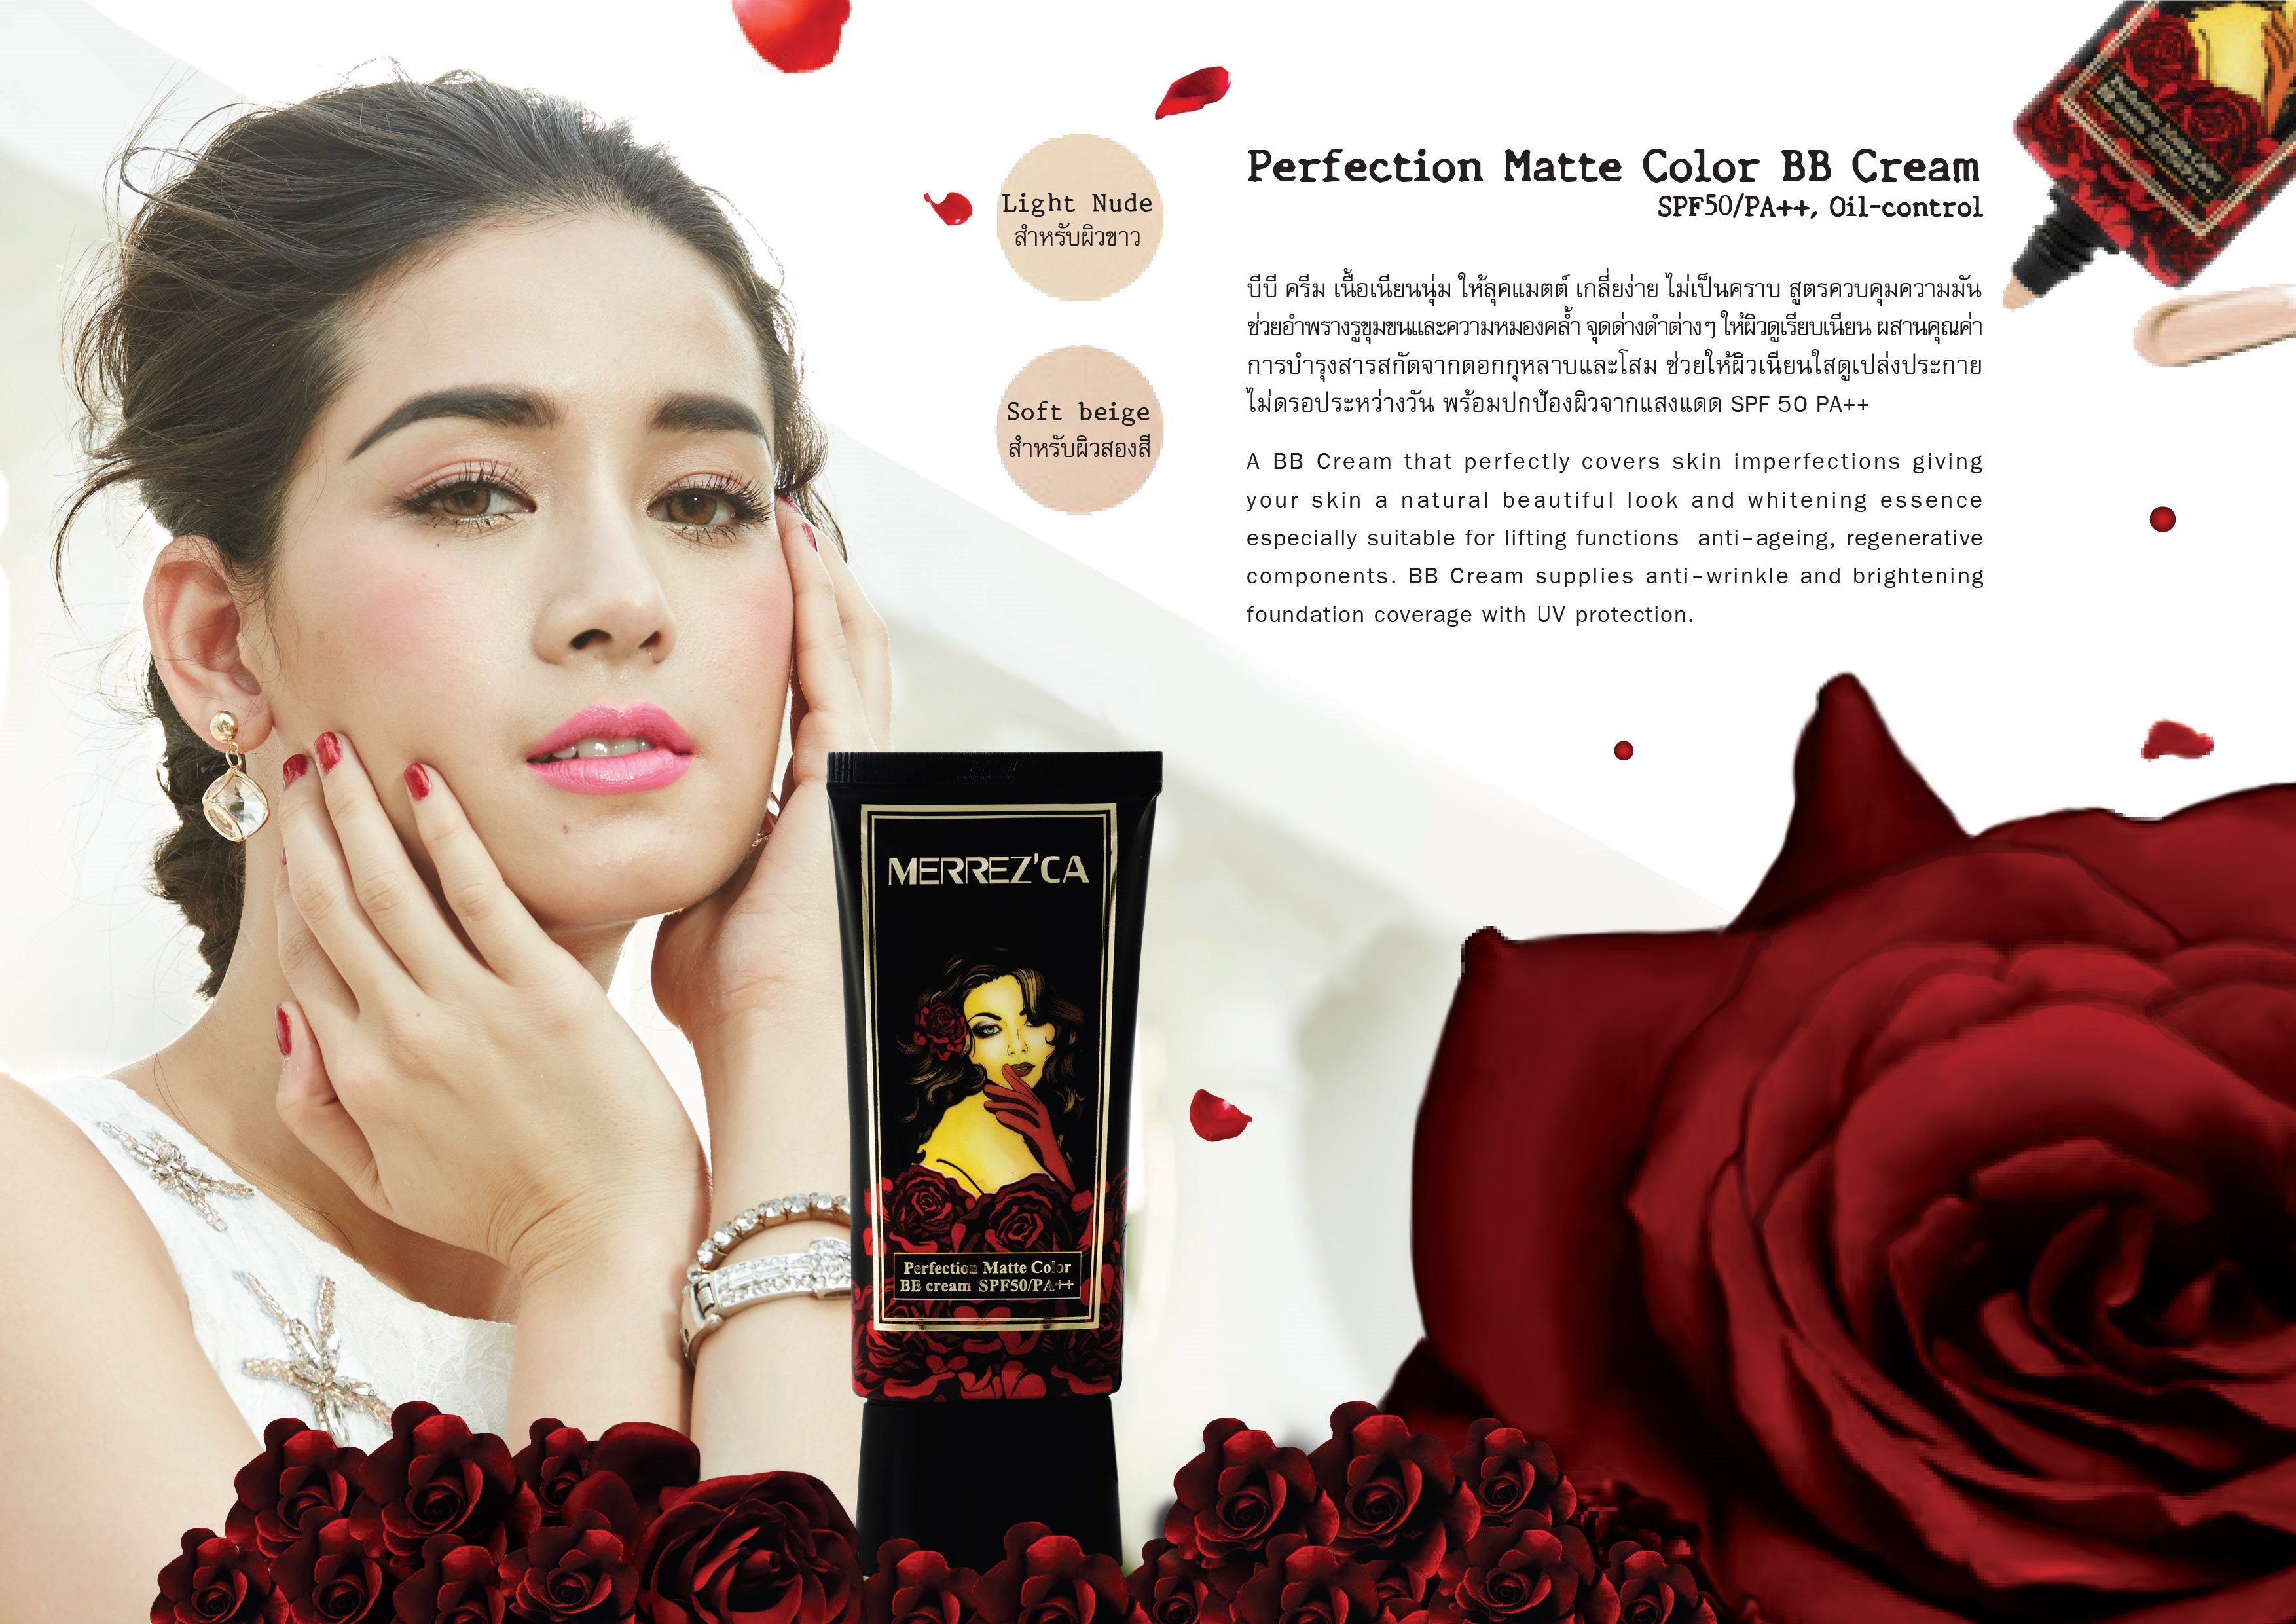 Merrez'Ca Perfection Matte Color Bb Cream ราคา